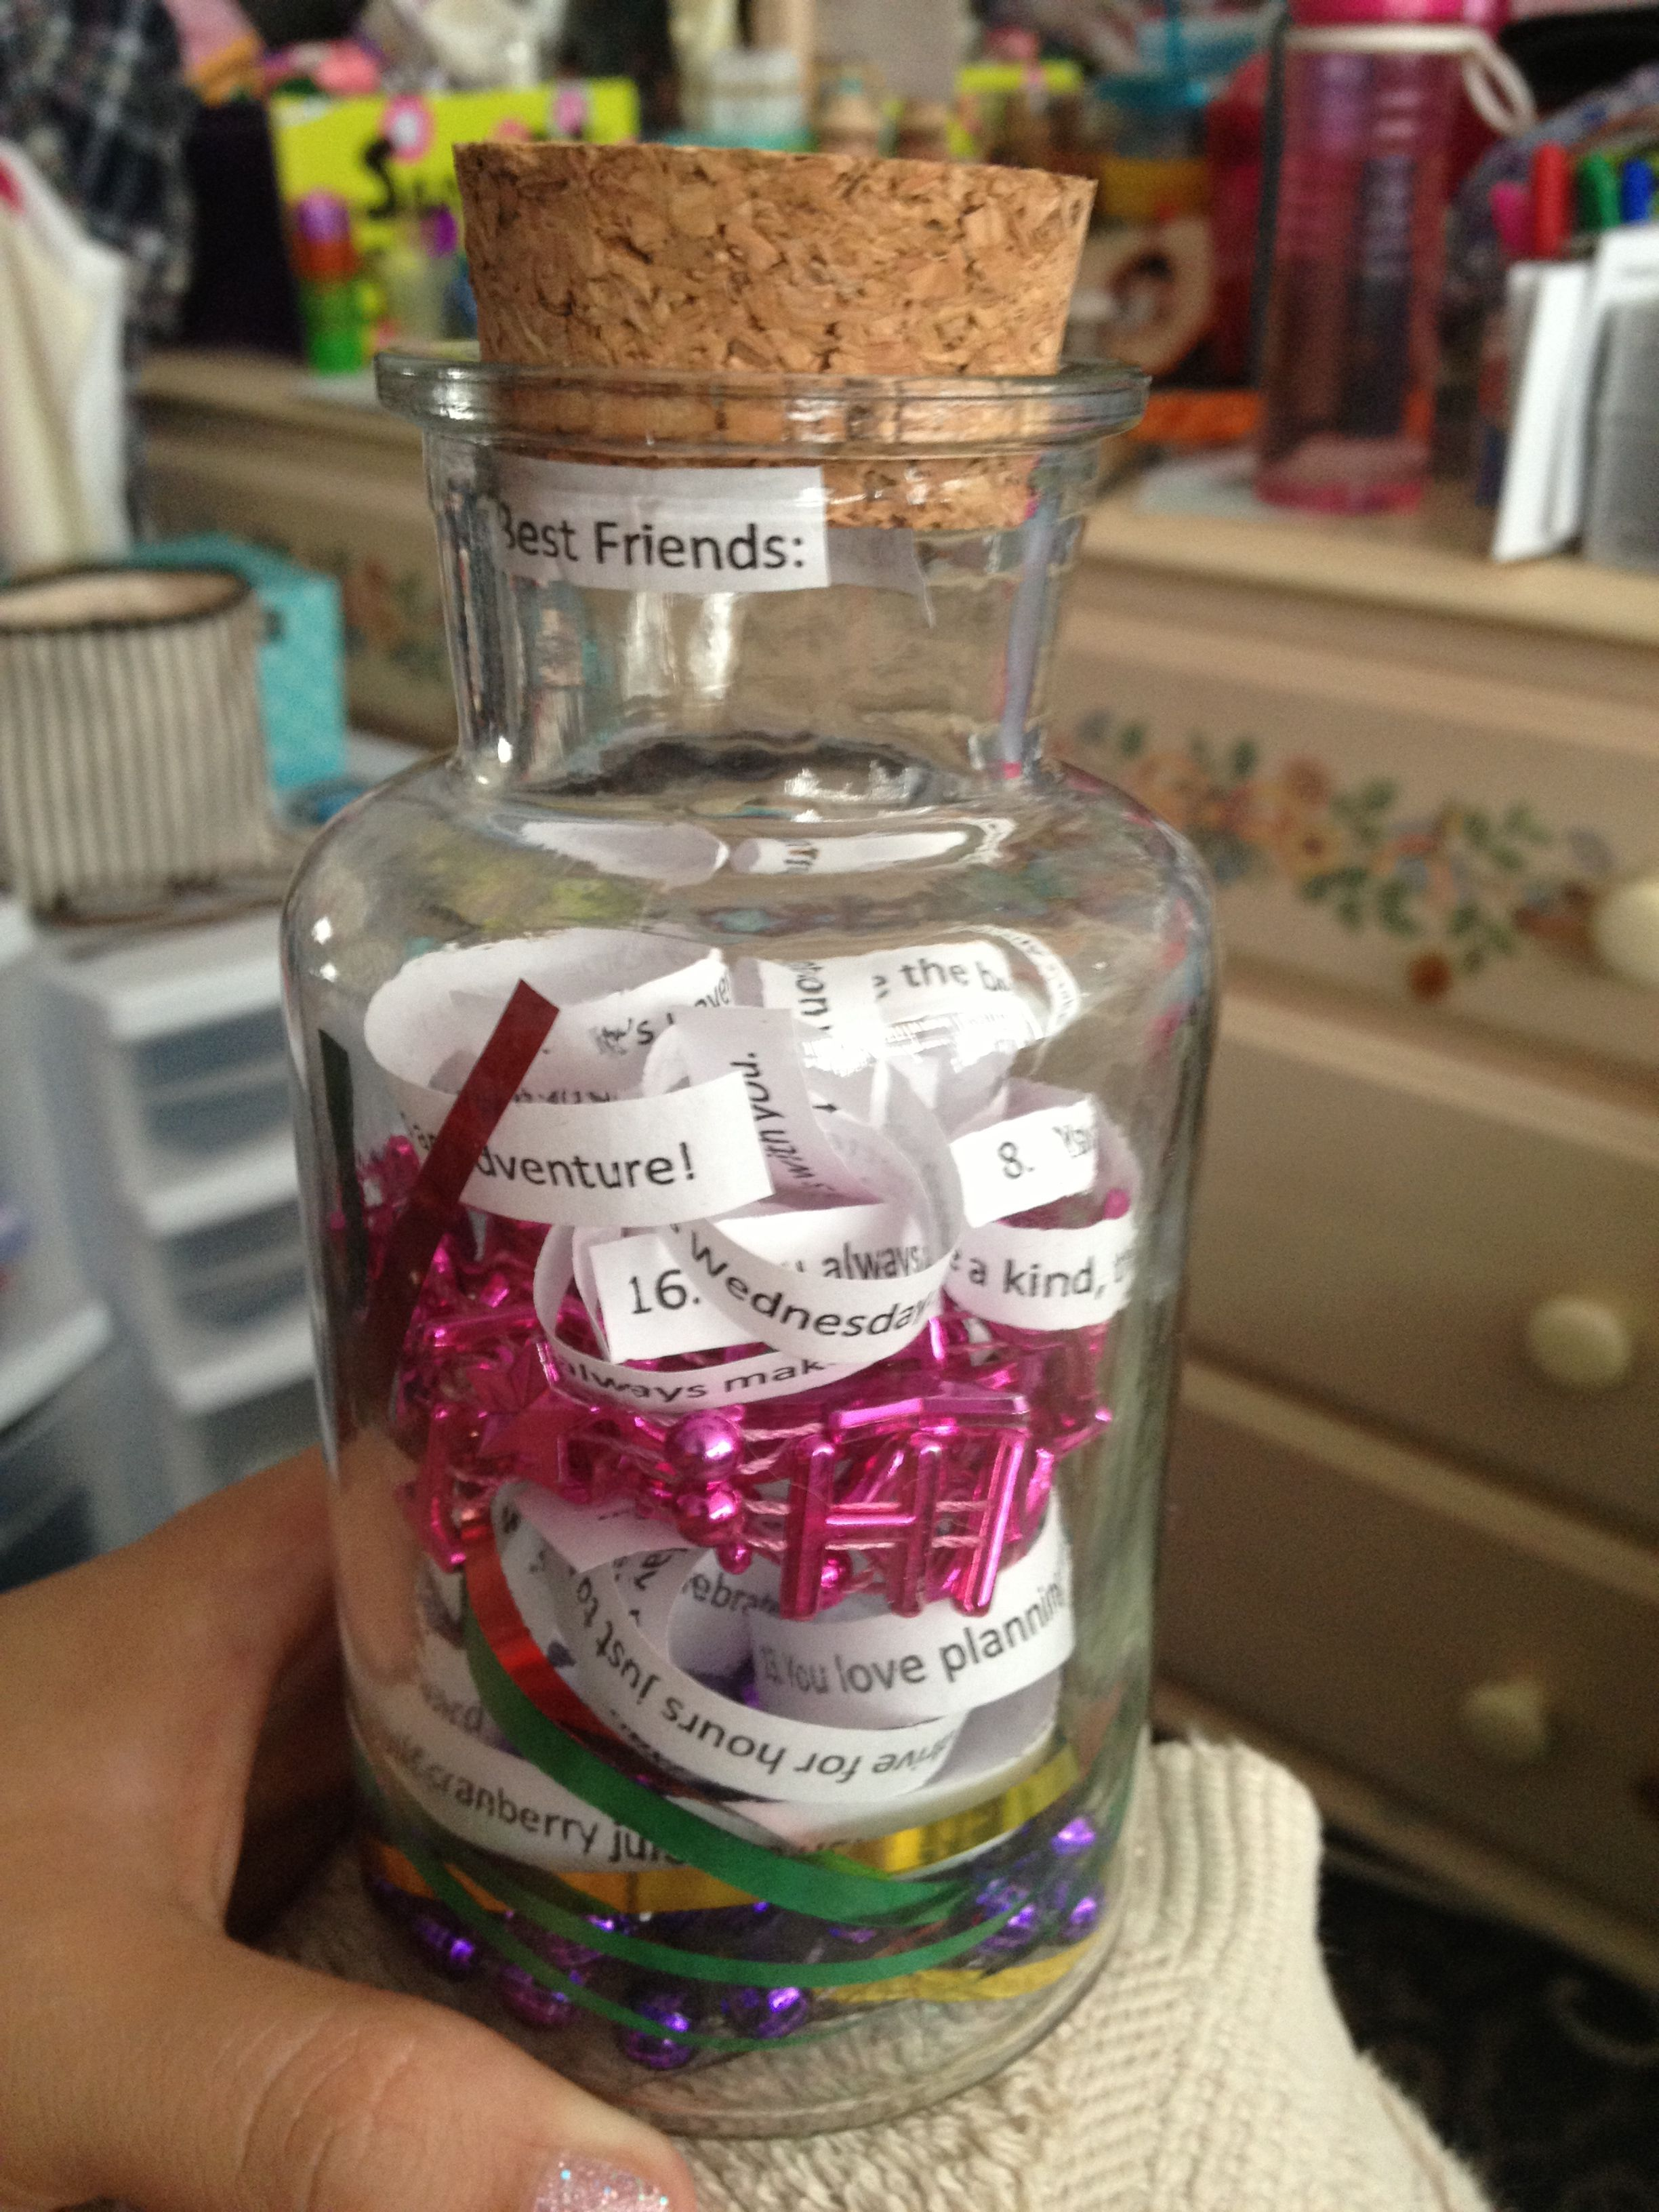 22 Reasons Youre My Best Friend In A Corked Glass Bottle For 22nd Birthday Gift